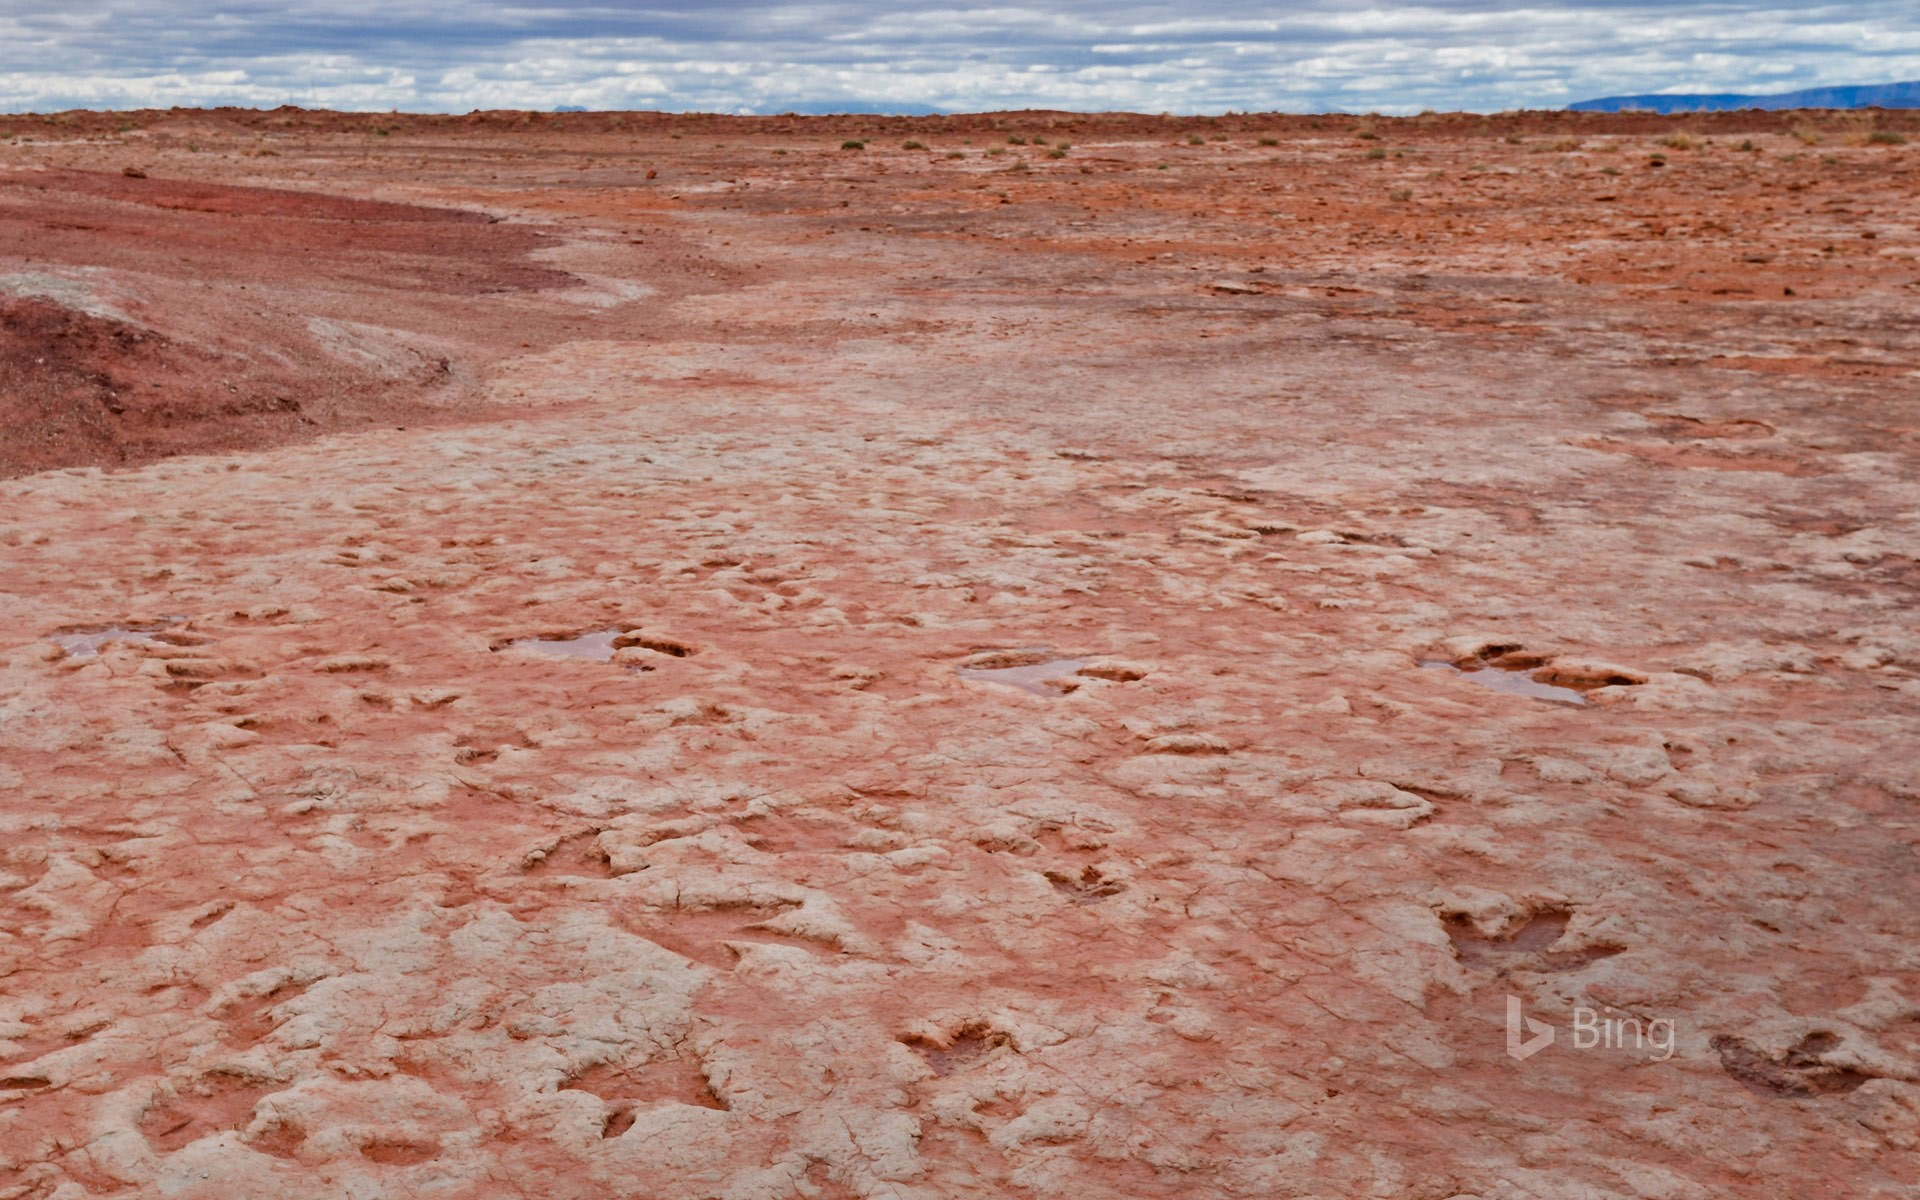 Dinosaur tracks from the Jurassic period found near Tuba City, Arizona, in the Navajo Nation